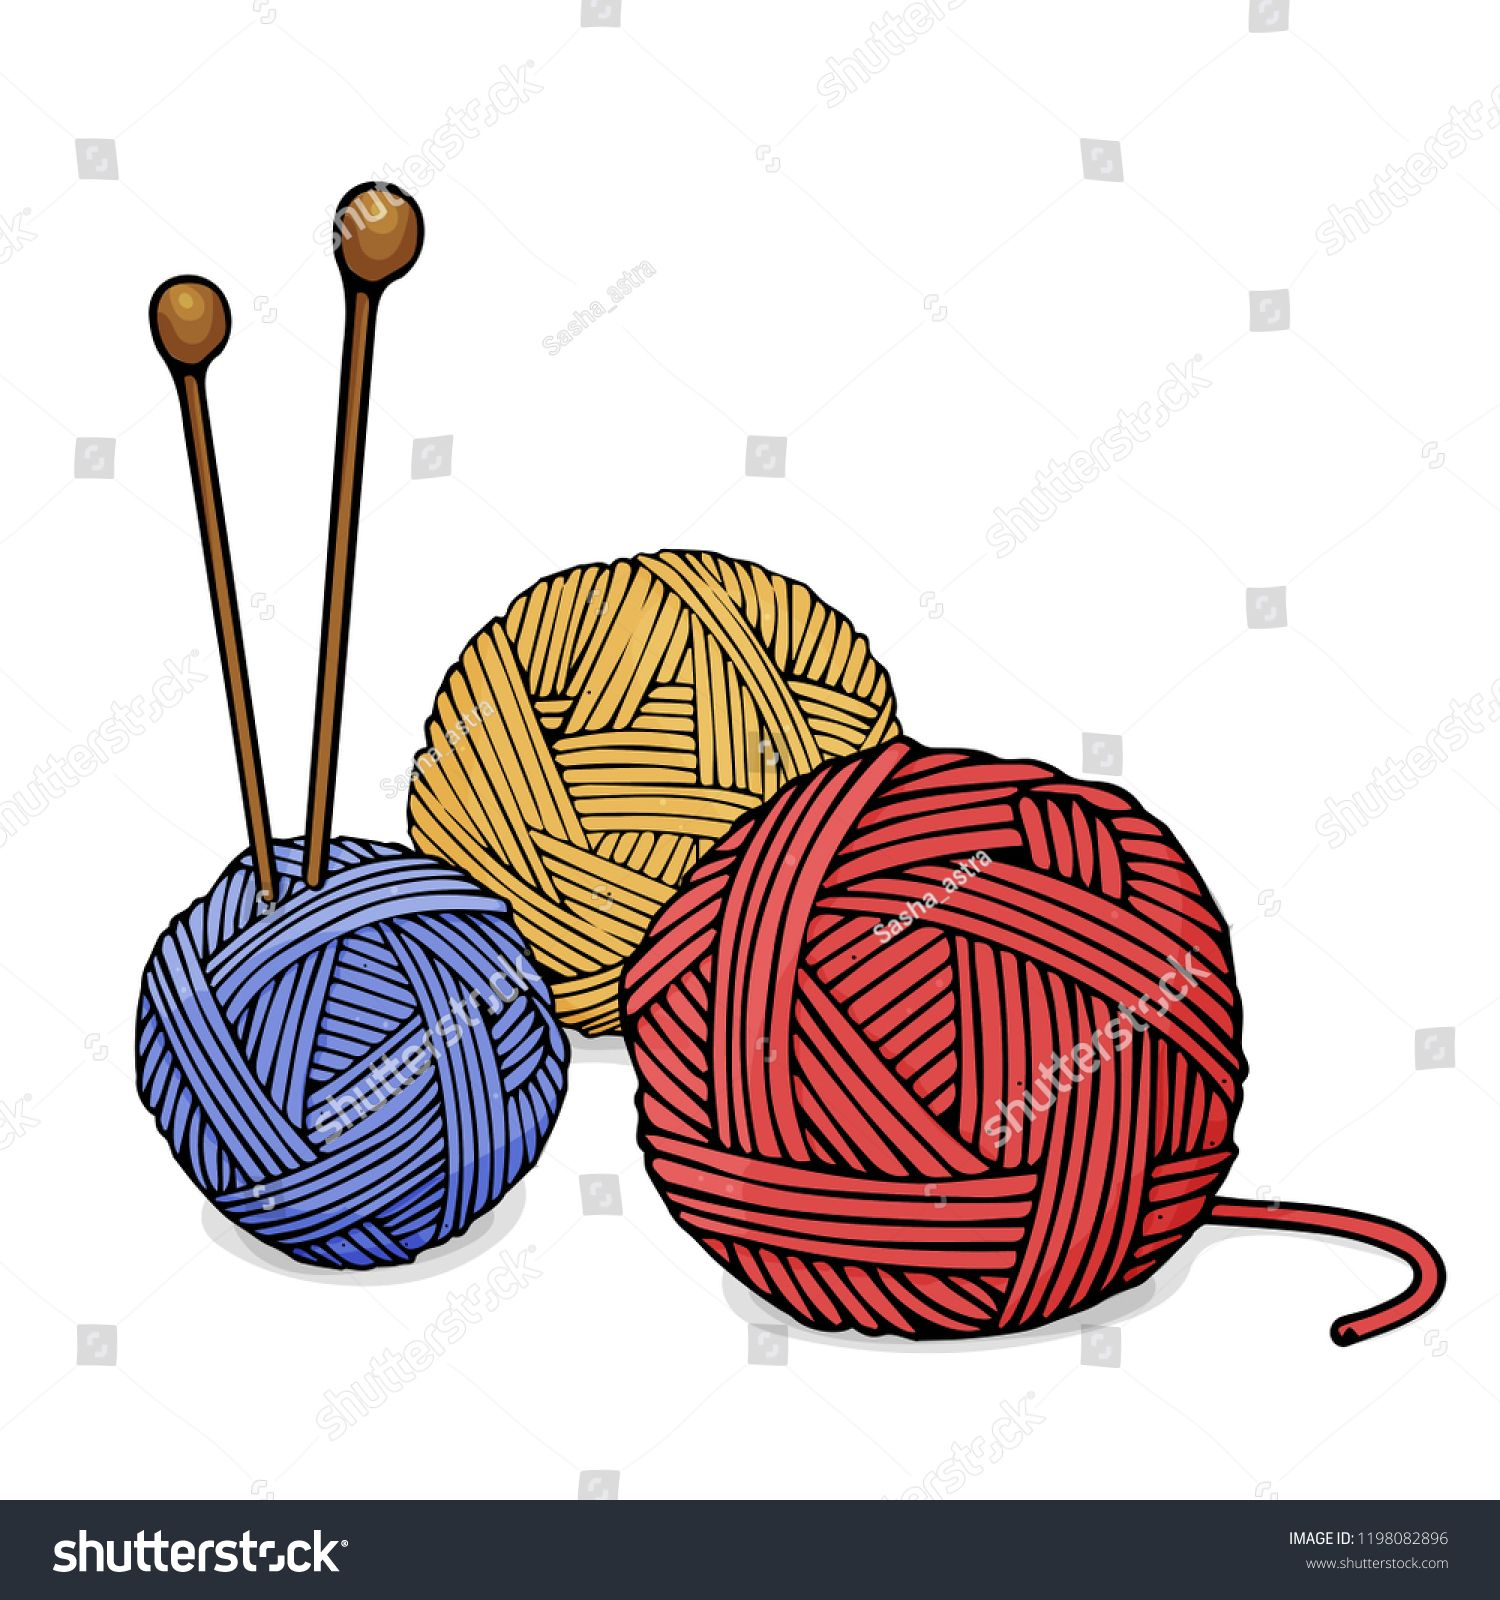 Balls Of Different Colors Of Wool For Knitting And Knitting Needles Colorful Vector Illustration In Sketch Style Knitting Needles Wo Wool Balls Knitting Color